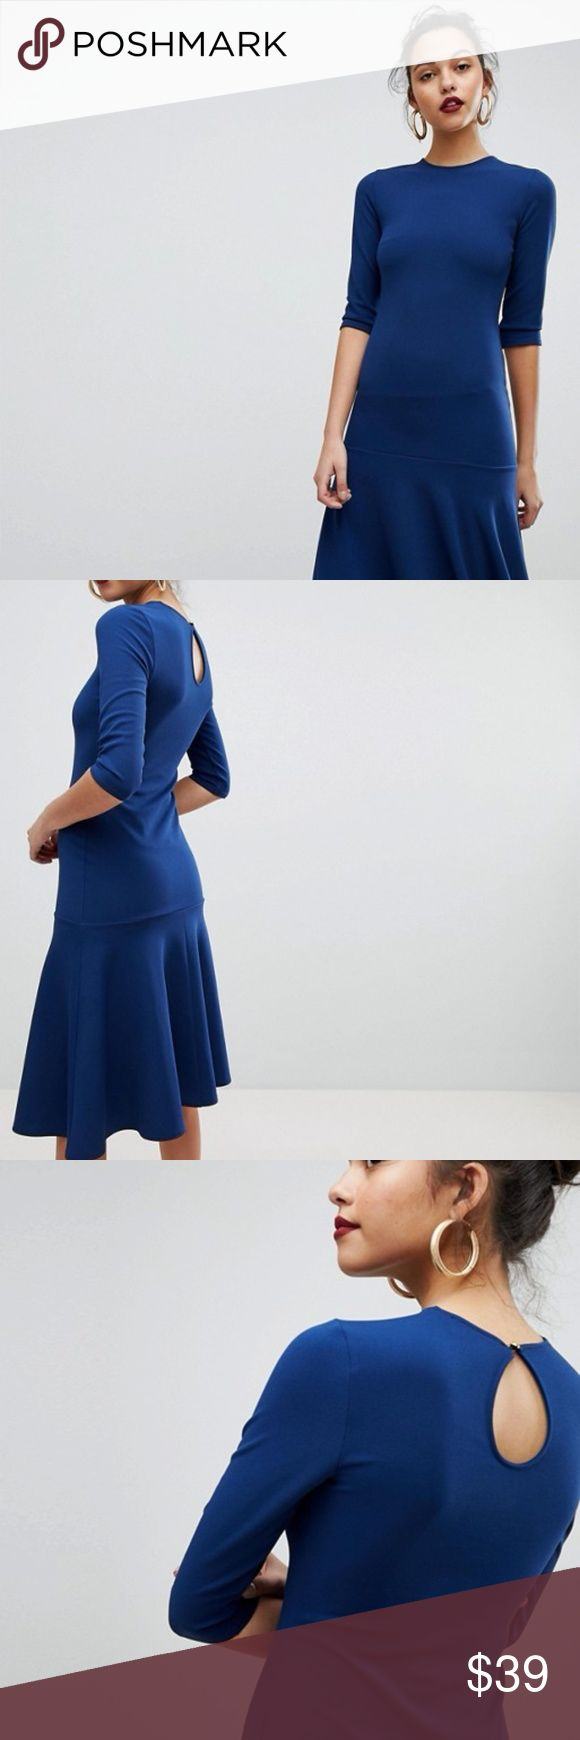 ASOS: Club L Kick Flare Scuba Crepe Dress PRODUCT DETAILS - Evening dress by Club L - Crew neck - Flared skirt - Button-keyhole back - Slim fit - A narrow cut that sits close to the body ASOS Dresses